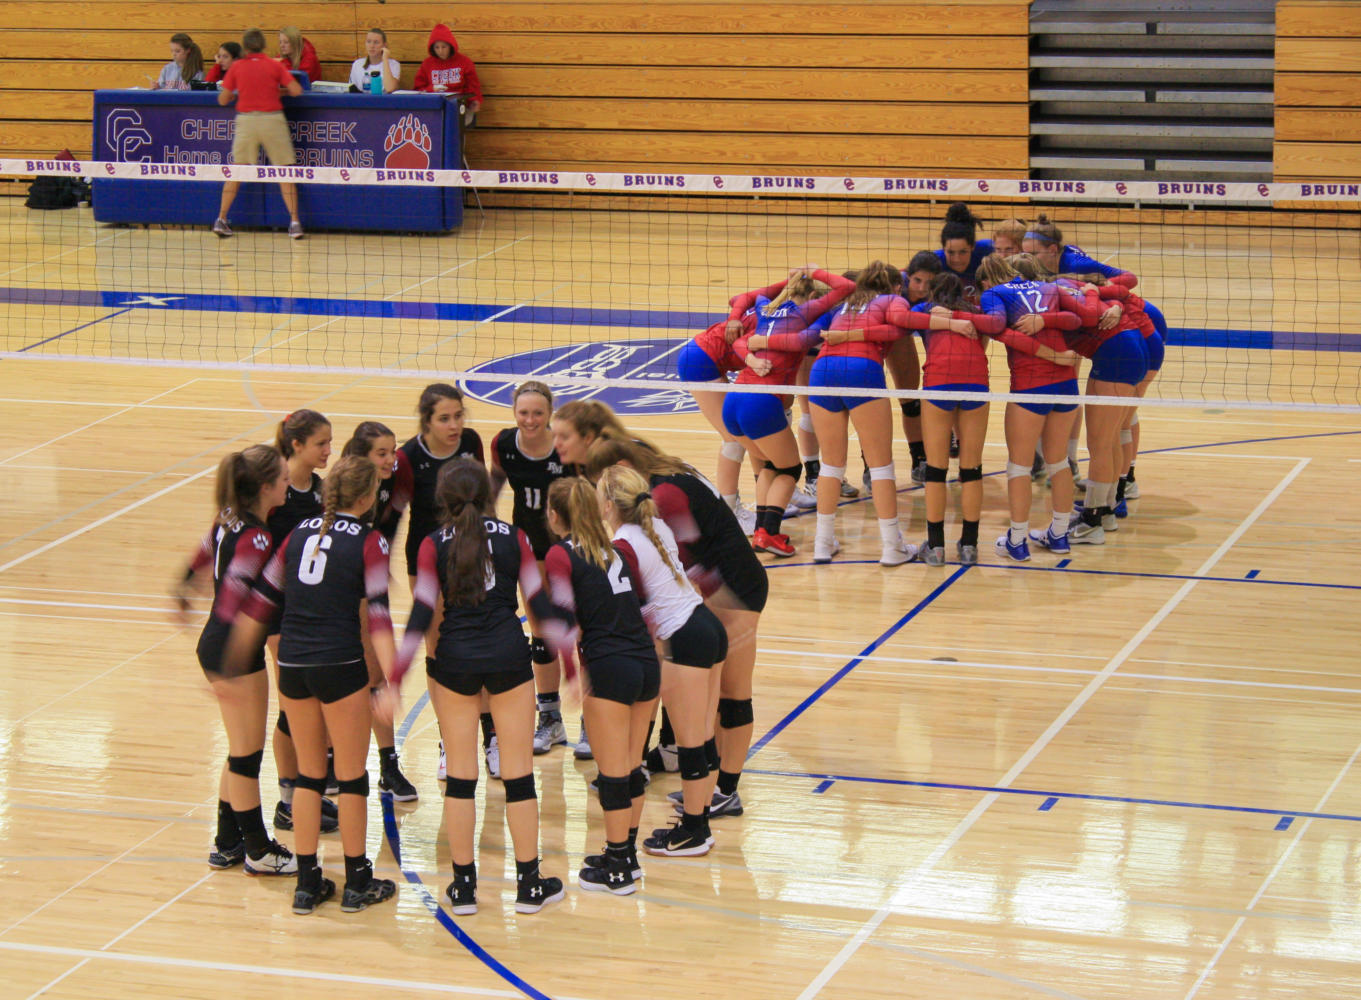 The Cherry Creek and Rocky Mountain teams gather together to get hyped before the match.